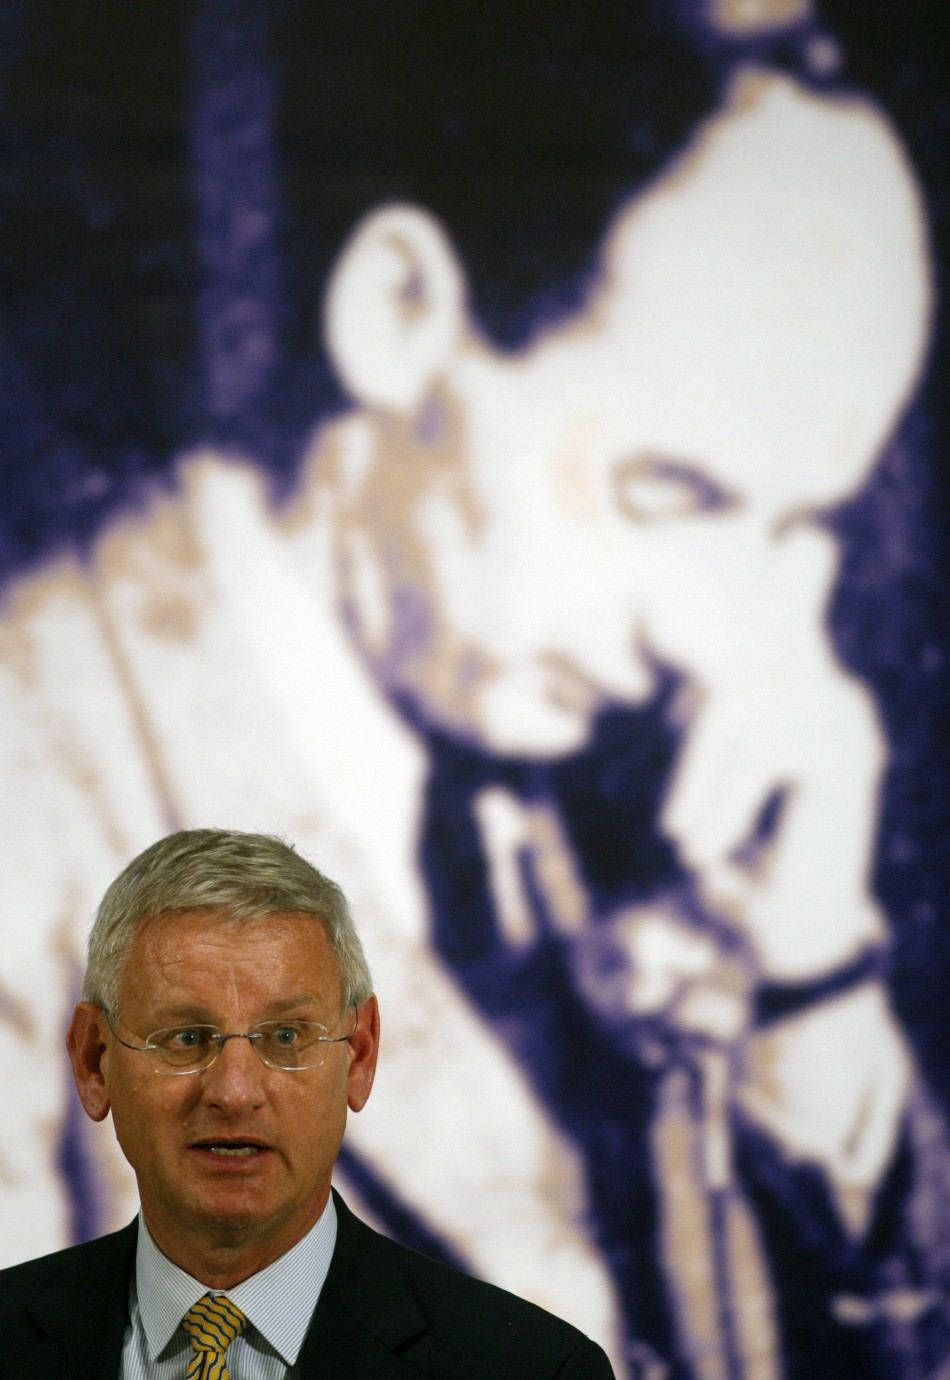 Sweden's Foreign Minister Carl Bildt delivers a speech at the opening ceremony of the Wallenberg Year in the Hungarian National Museum in Budapest (Reuters)